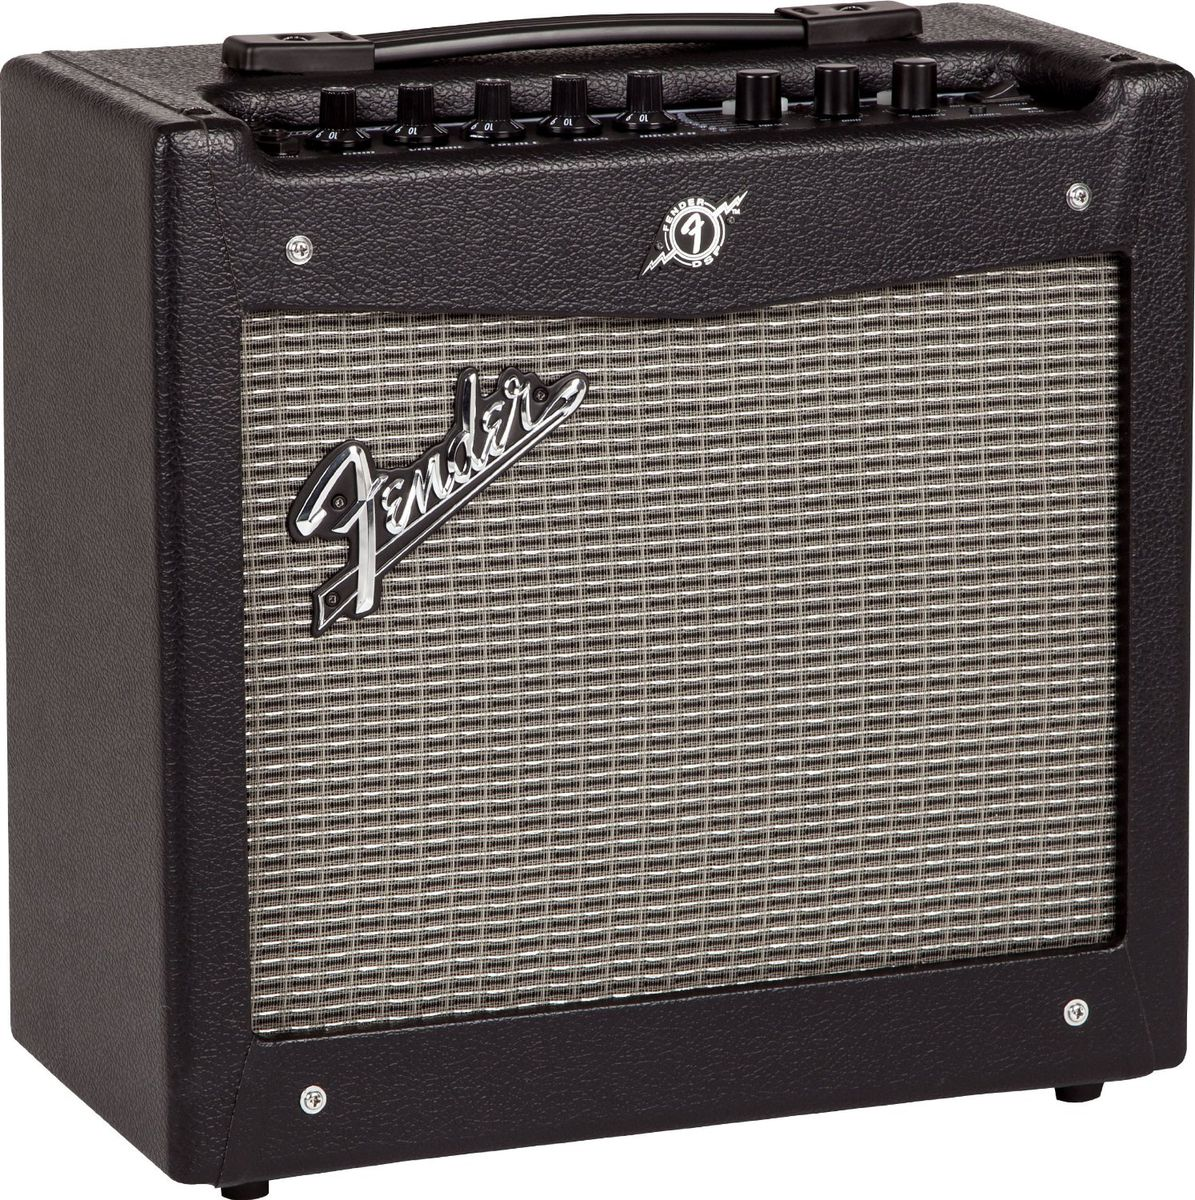 fender mustang i v2 20 watt electric guitar amplifier | buy online